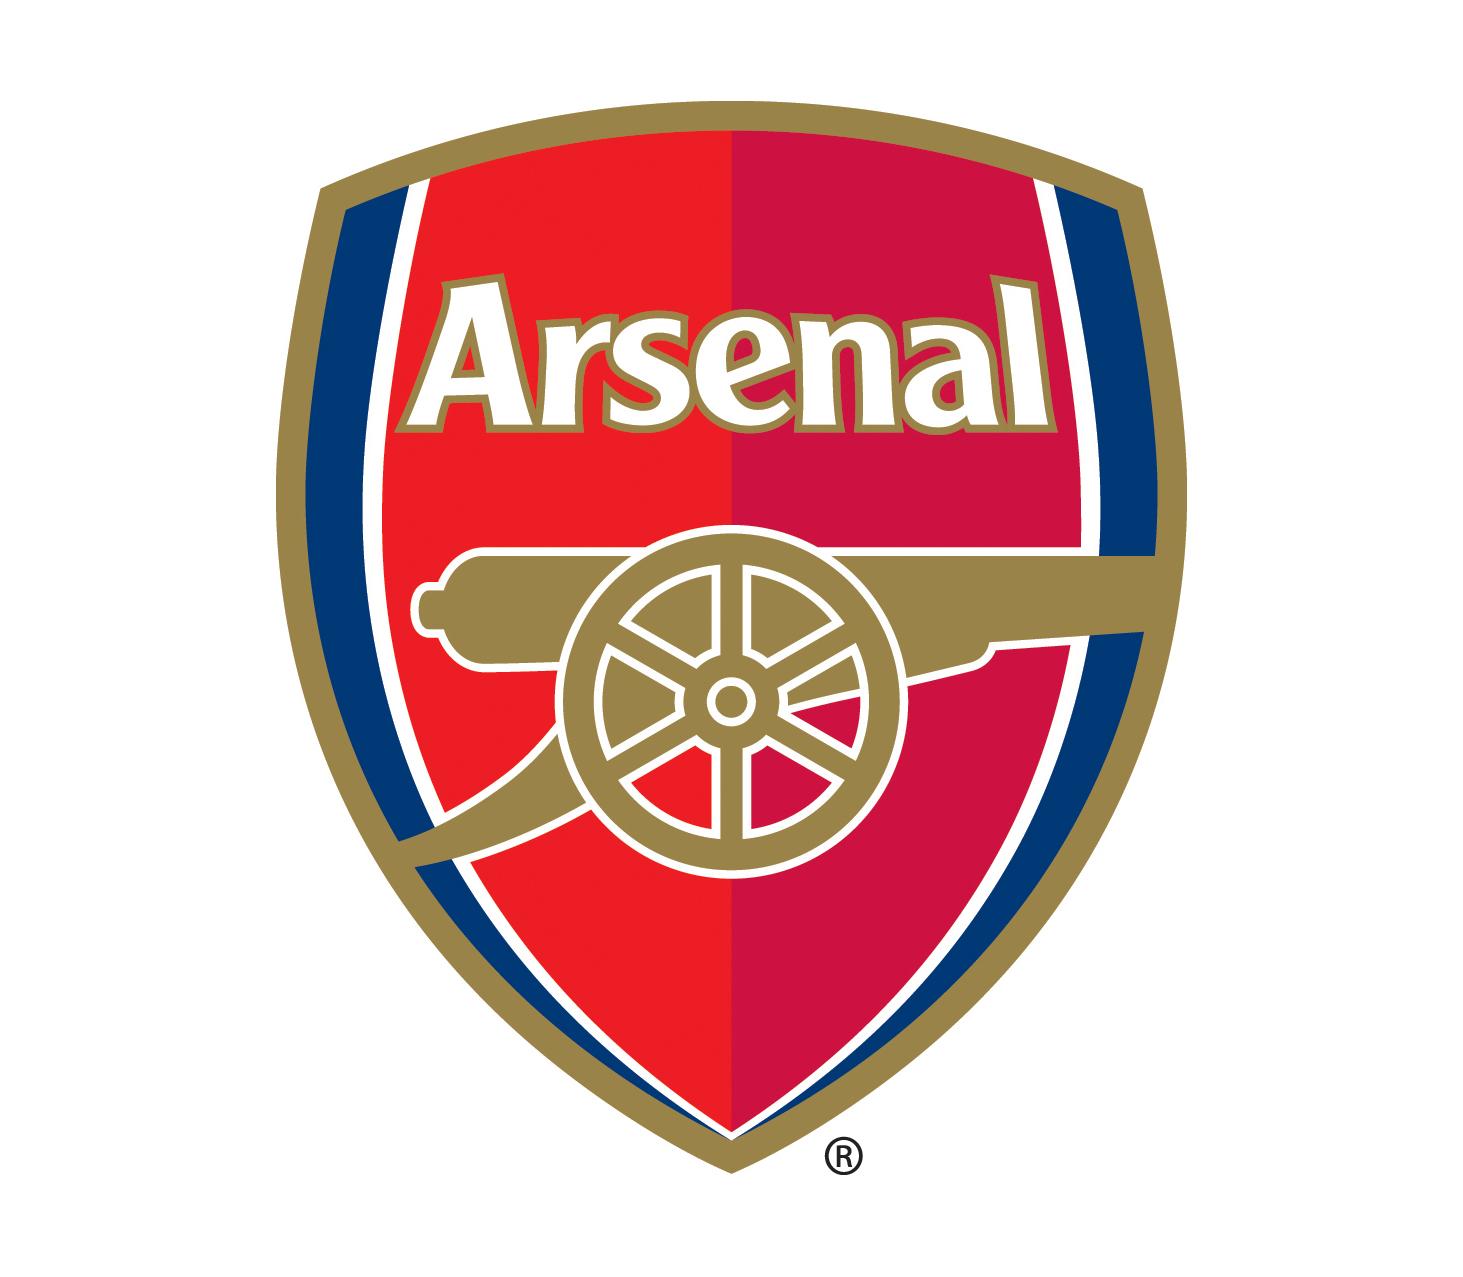 Managing Editor (Digital, TV, Social Media, Print, Apps) - Arsenal FCAug 2002 - Feb 2015